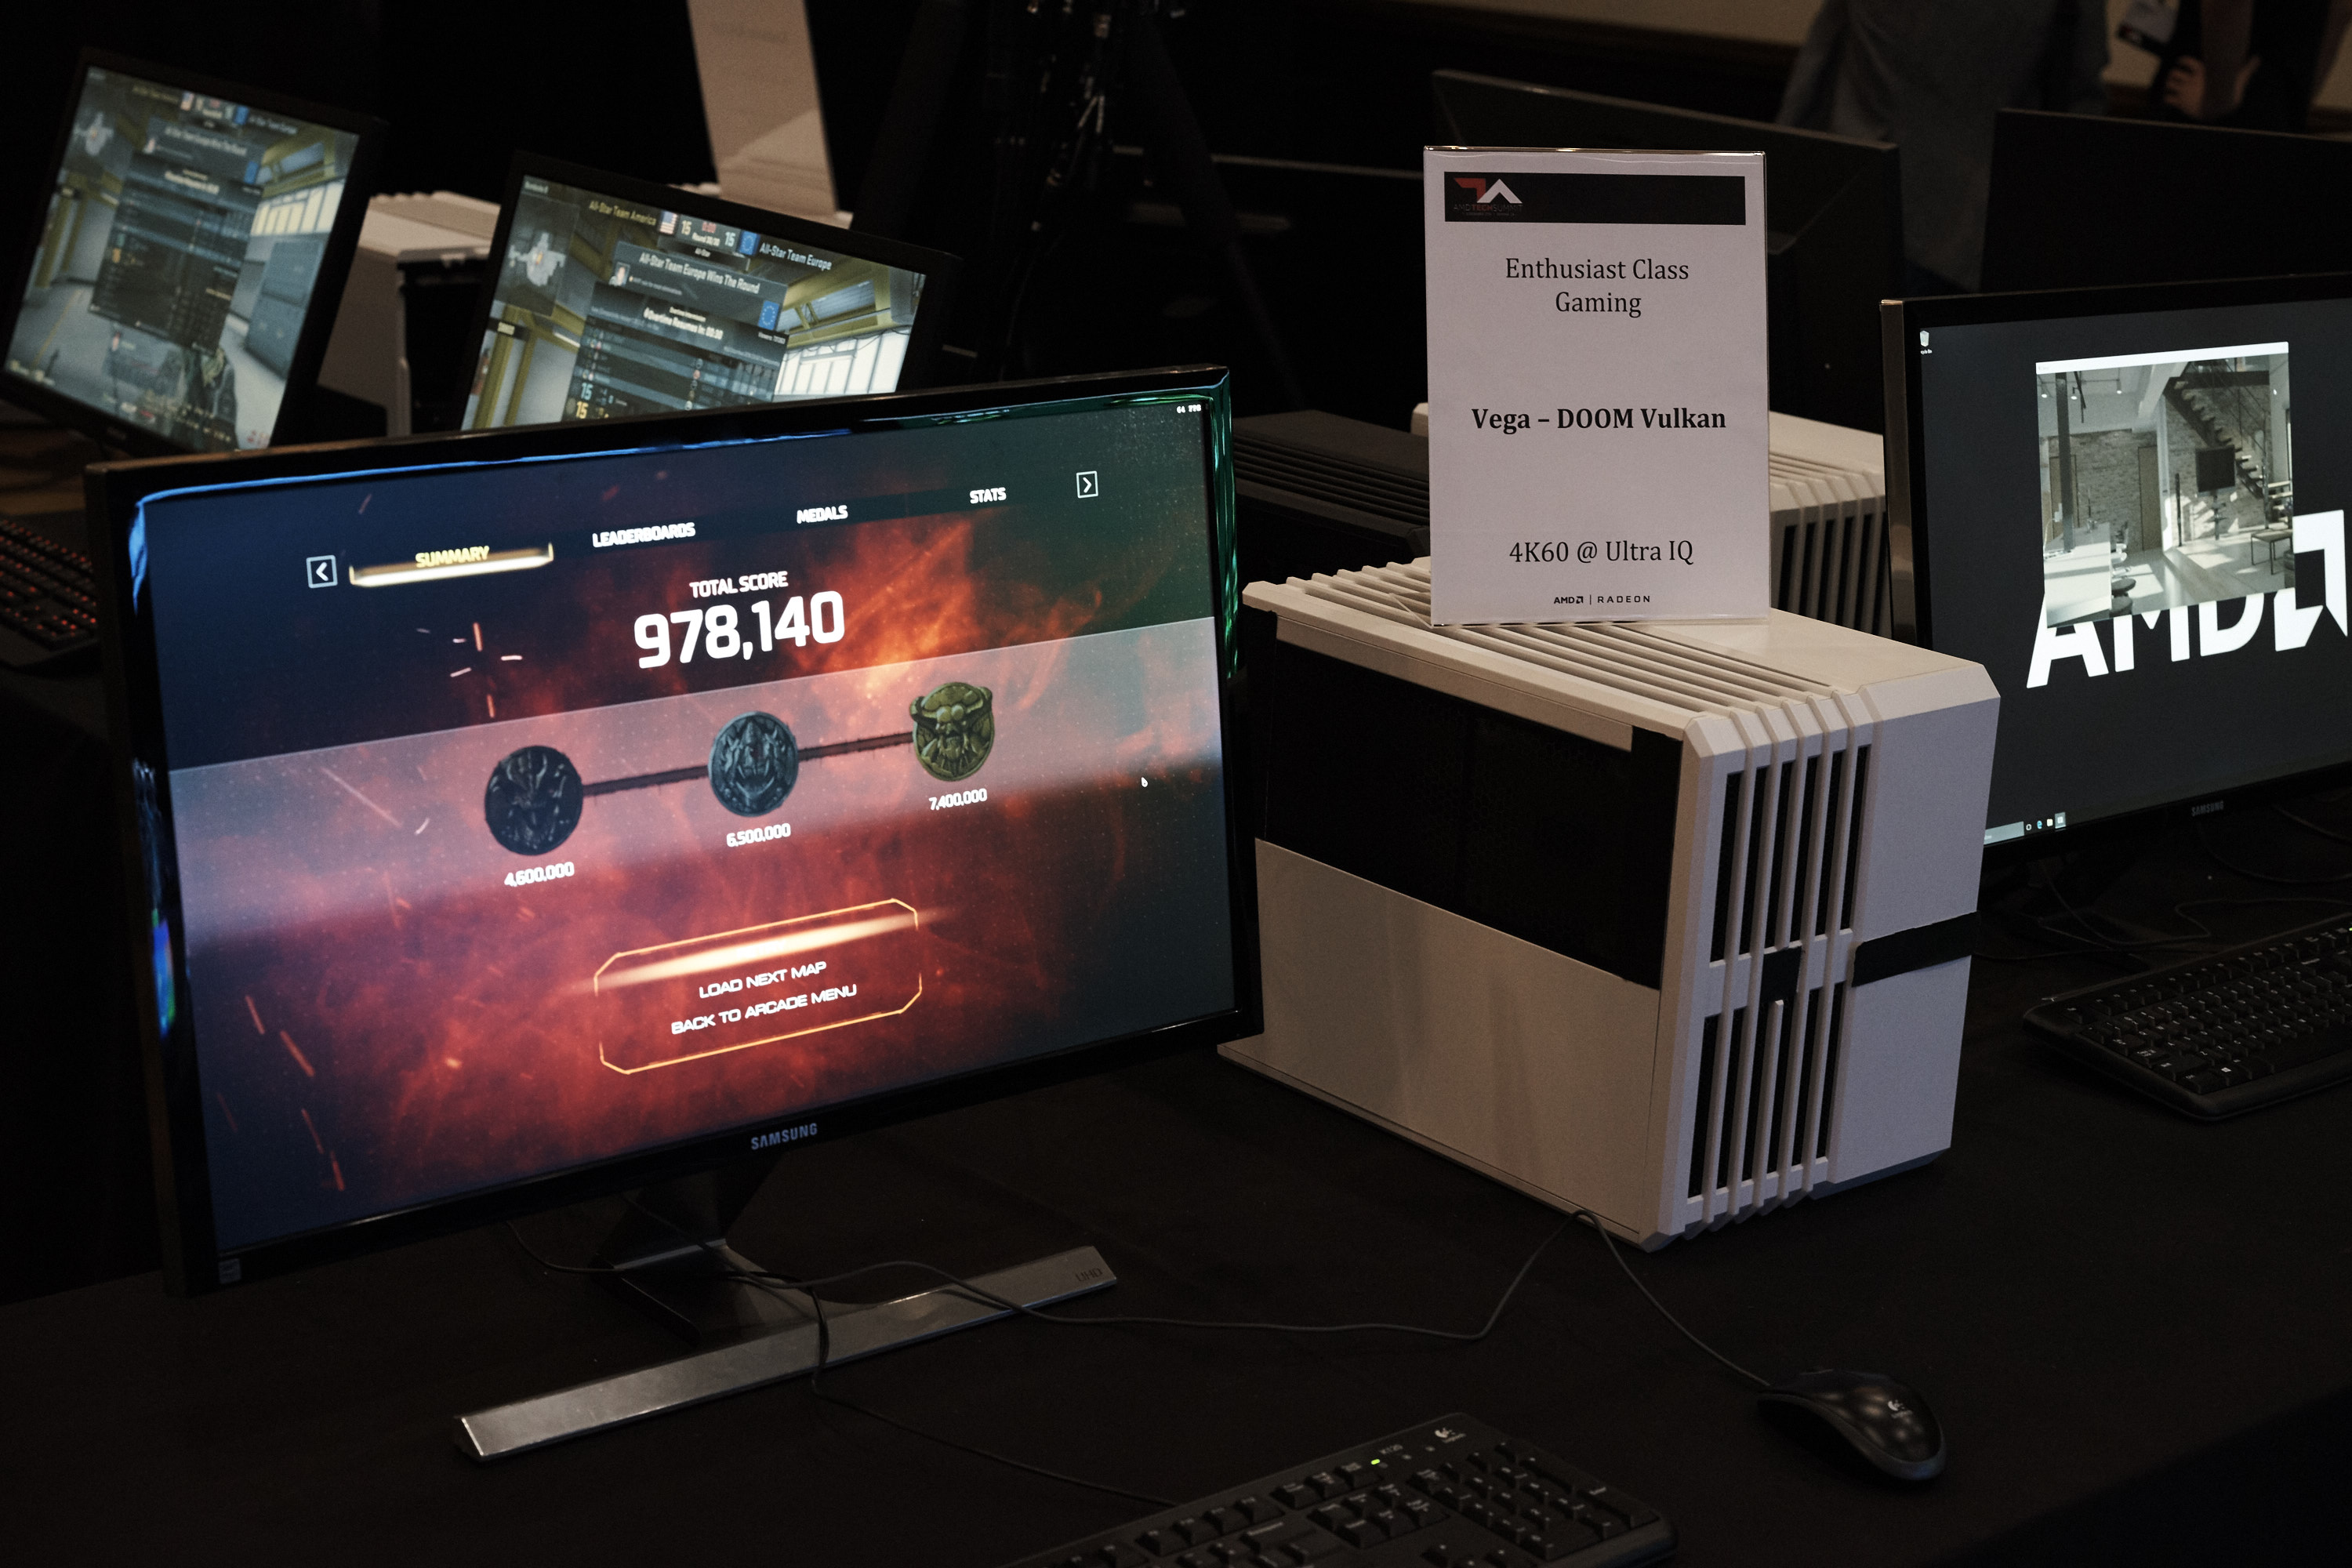 AMD Vega demo system, photo courtesy of pcgameshardware.de